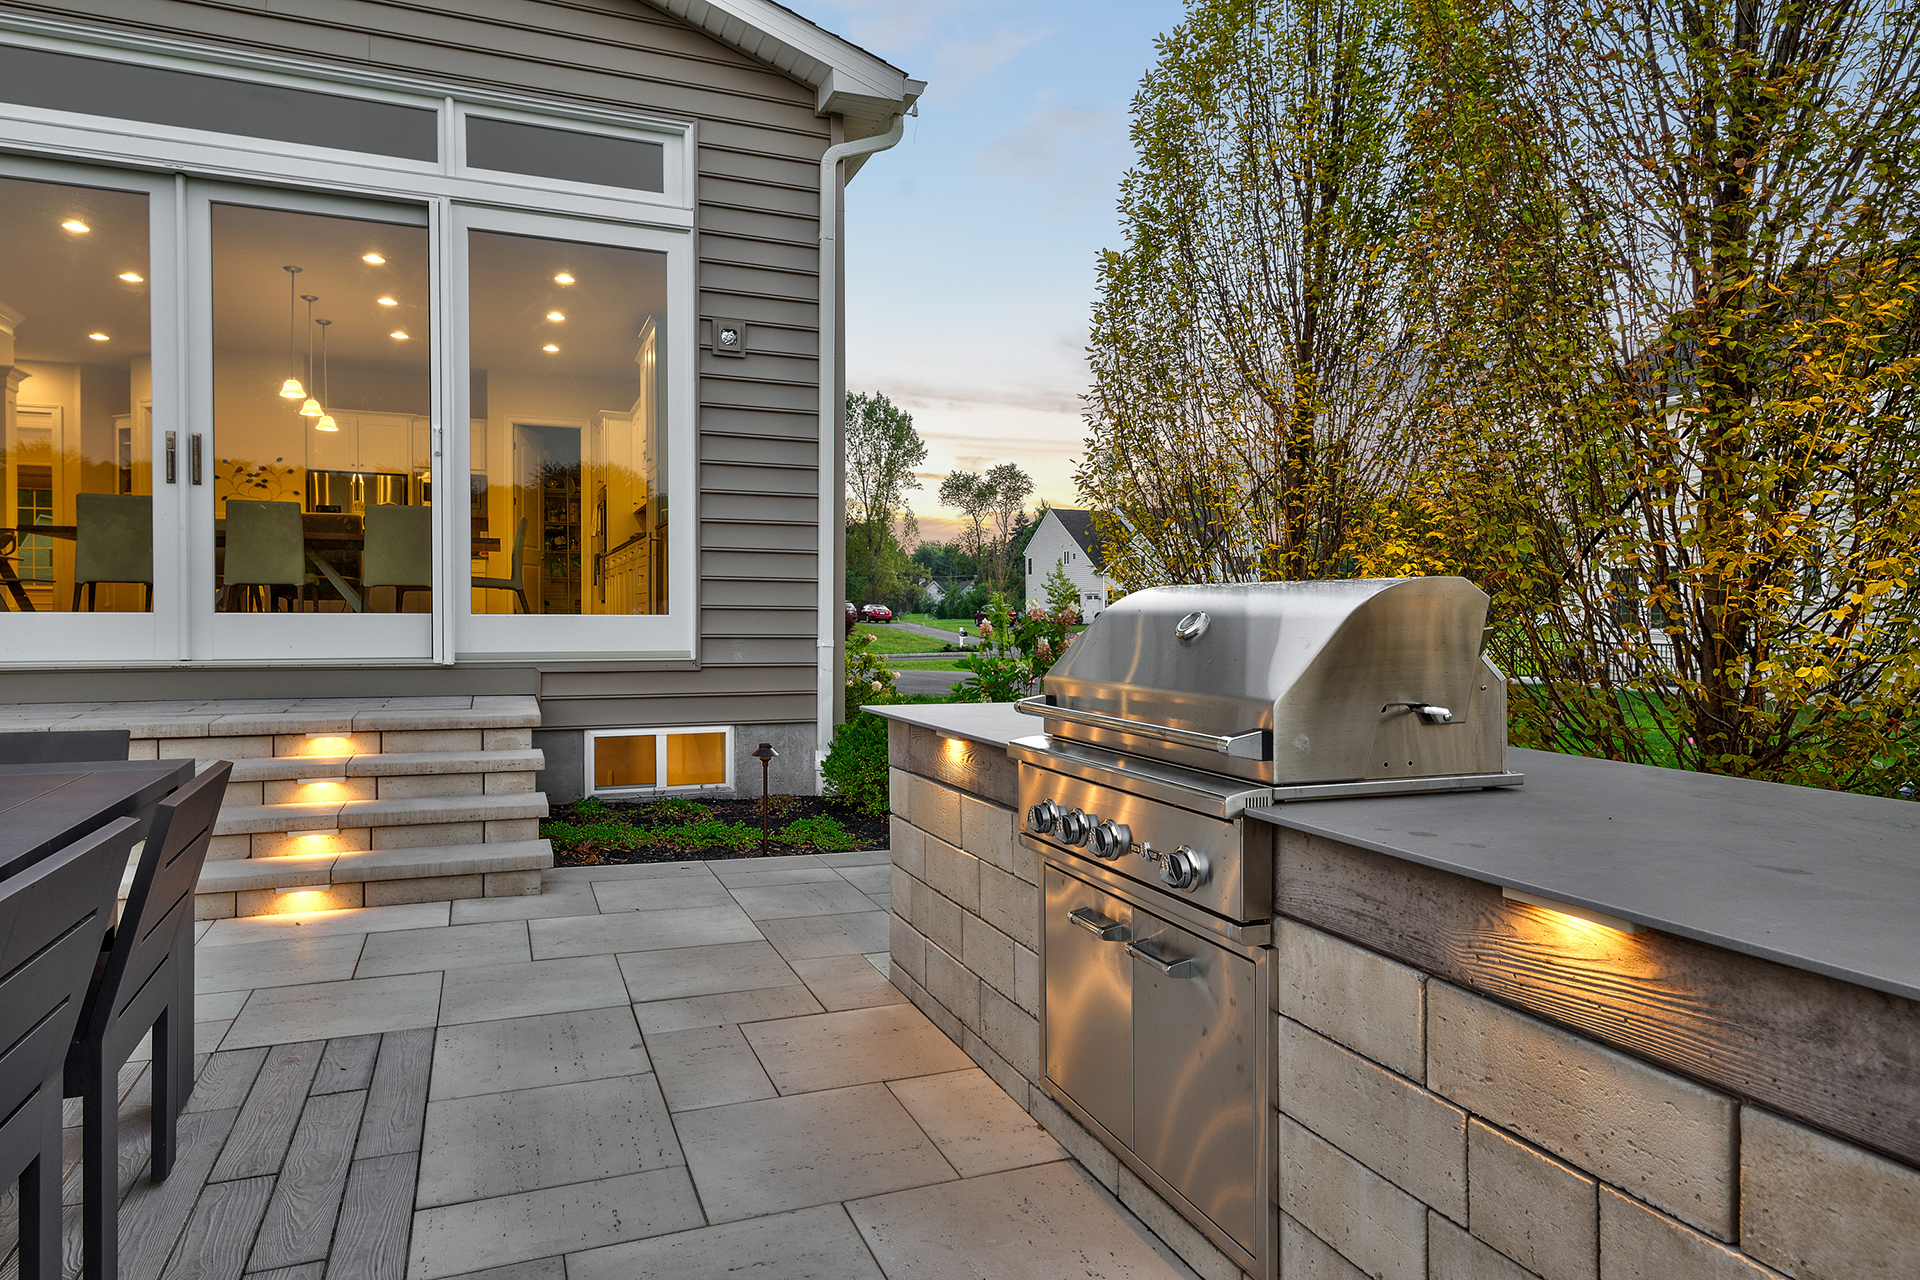 Kenny After - Outdoor Kitchen by DiSabatino Landscaping & Esposito Masonry